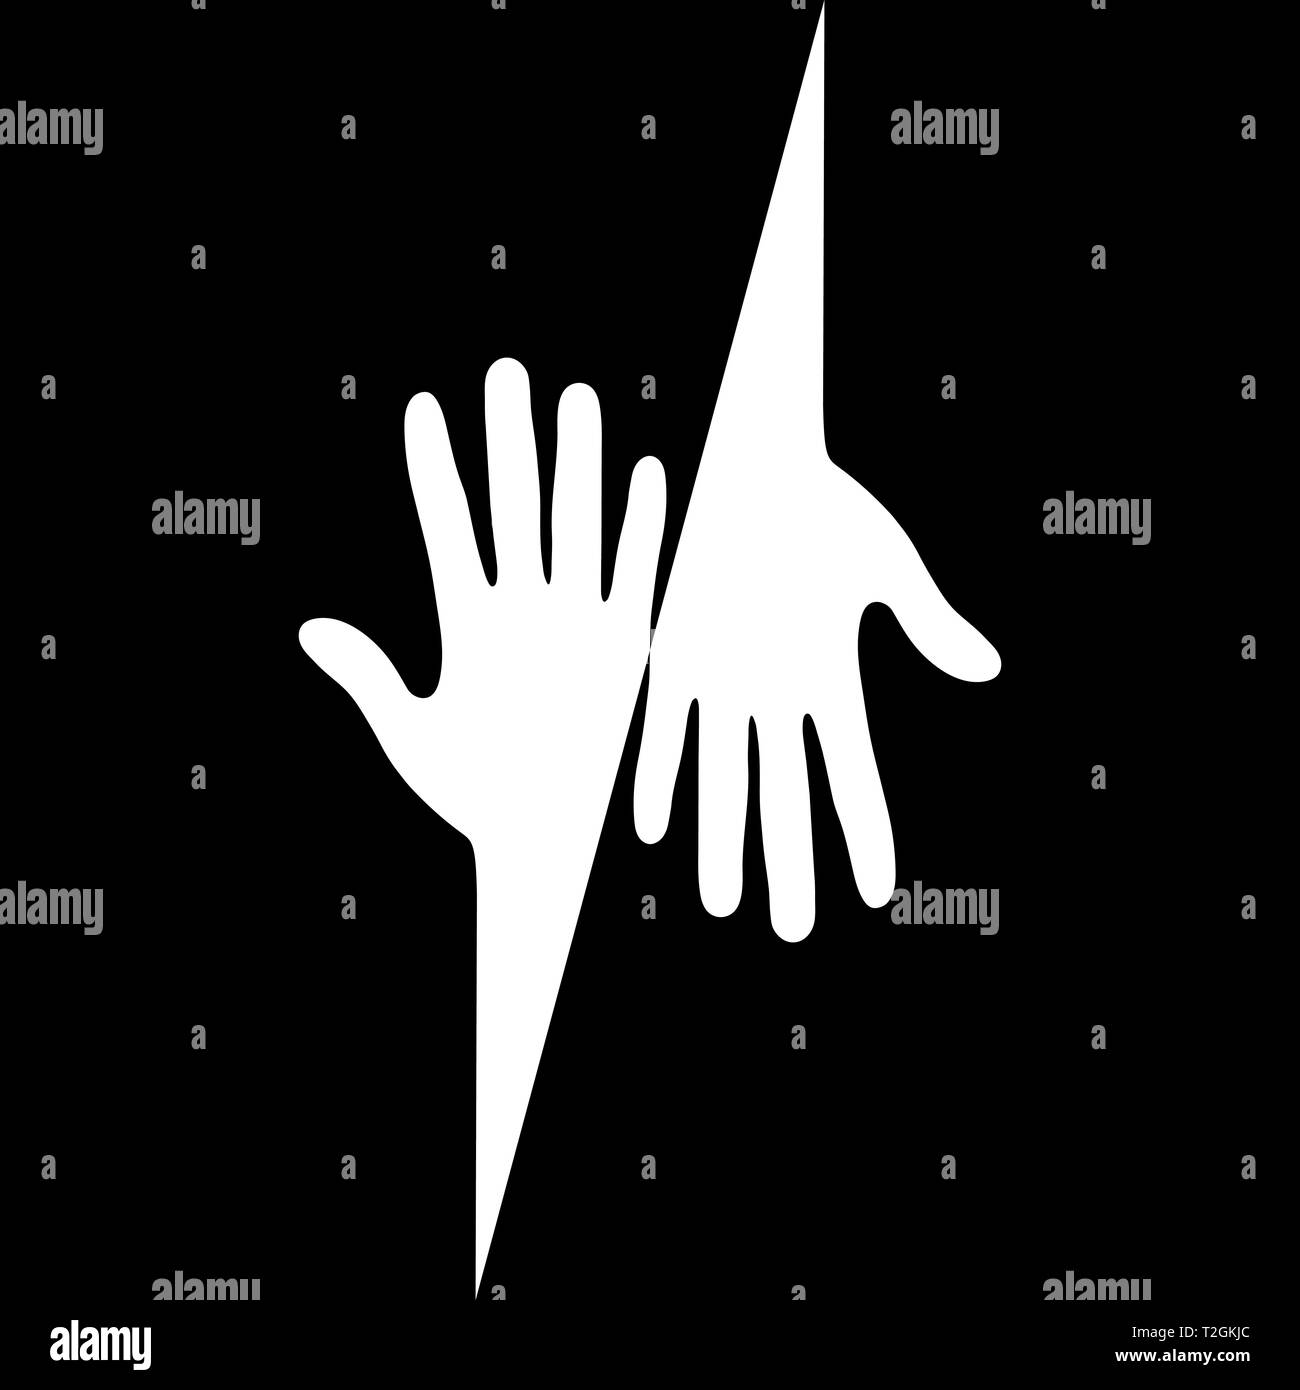 White silhouette of two hands with fingers on black background, simple design Stock Vector